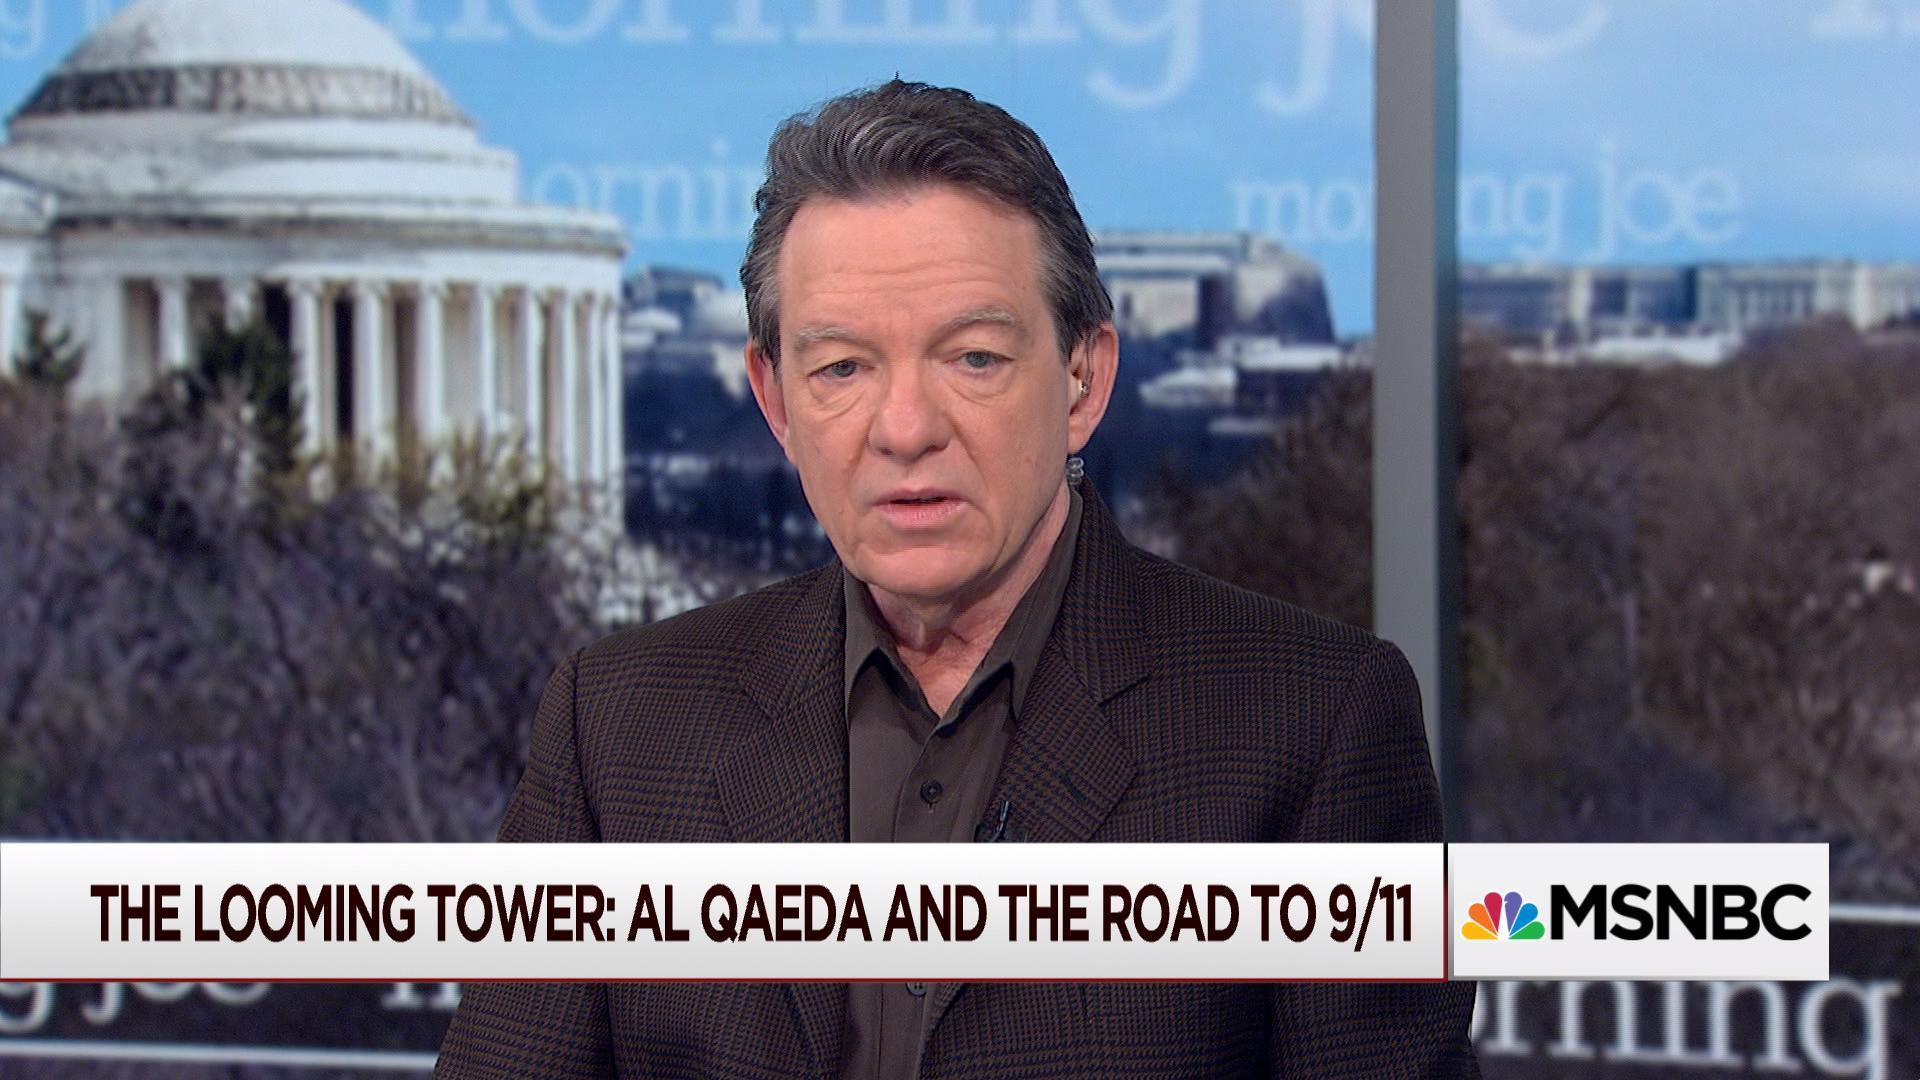 Pulitzer Prize-winning 'Looming Tower' adapted to TV series